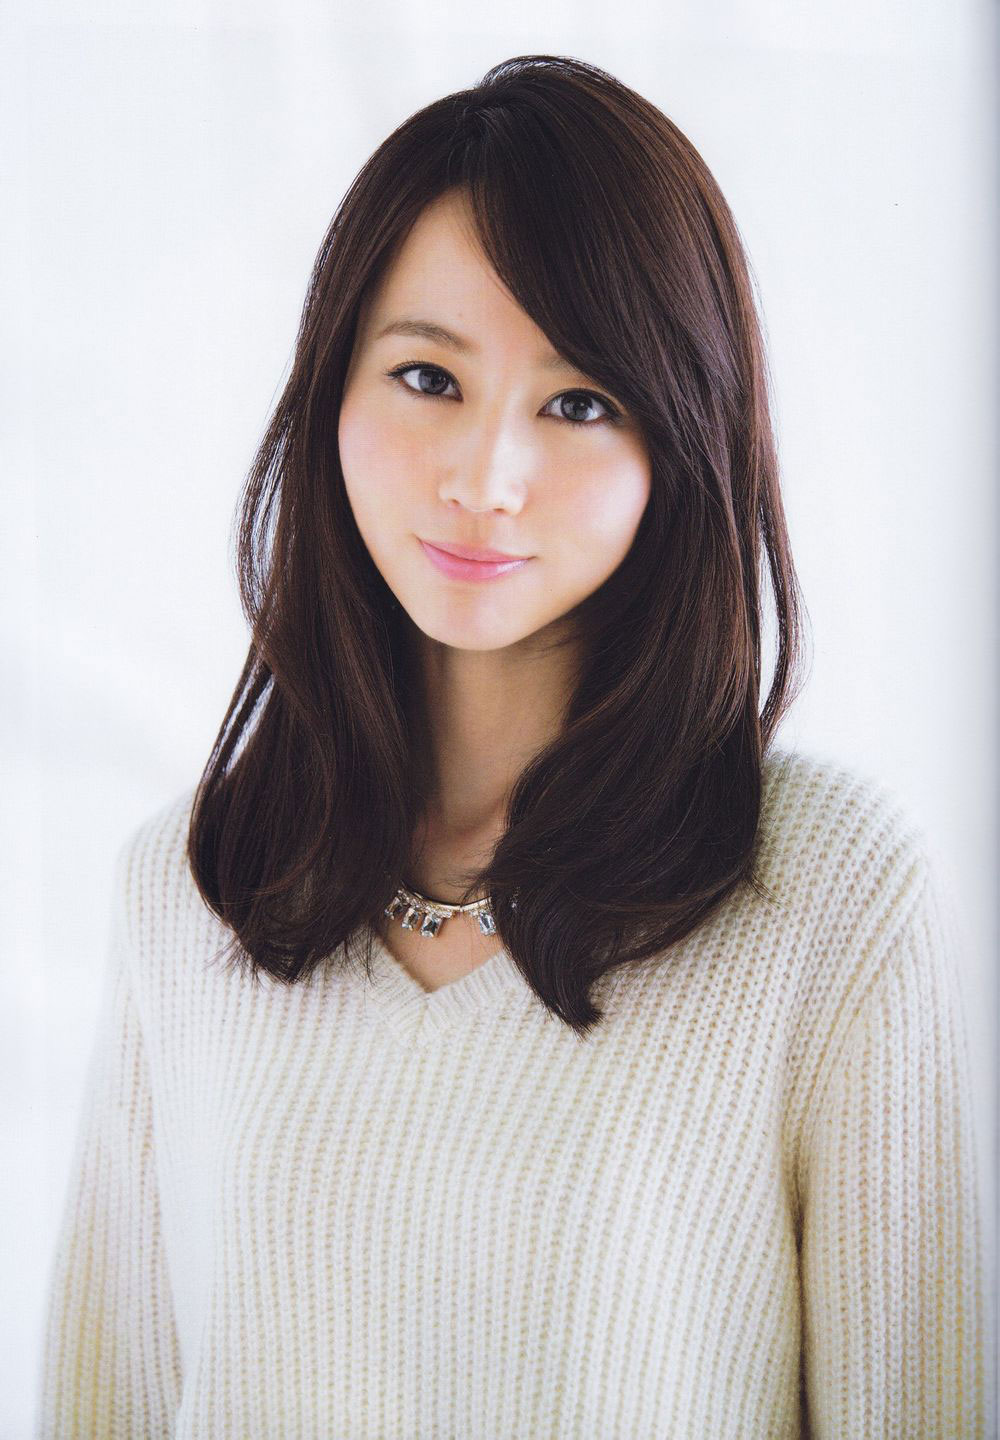 Yui Aragaki (b. 1988 Later became an actress Yui Aragaki (b. 1988 Later became an actress new picture